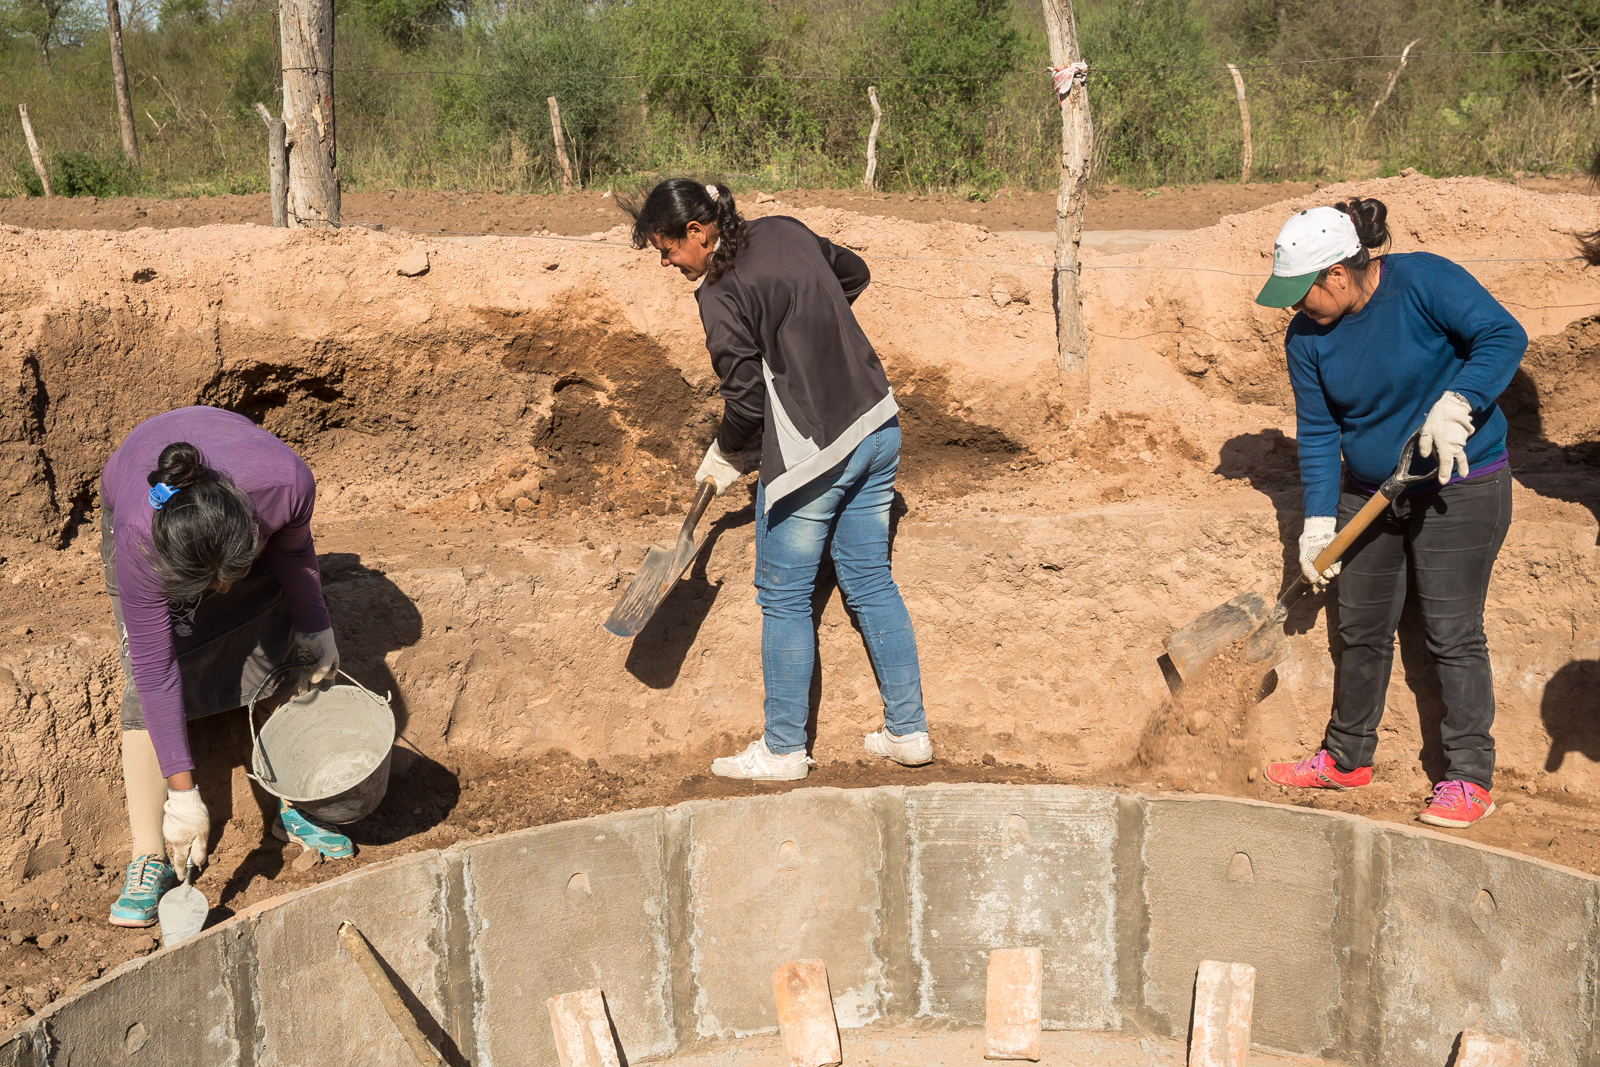 Beneficiaries of the project located in the province of Chaco, in the middle of construction of a 16,000-liter cistern for capturing rainwater. Photo: Rodrigo Alonso, Unidad para el Cambio Rural (Ministerio de Agroindustria)